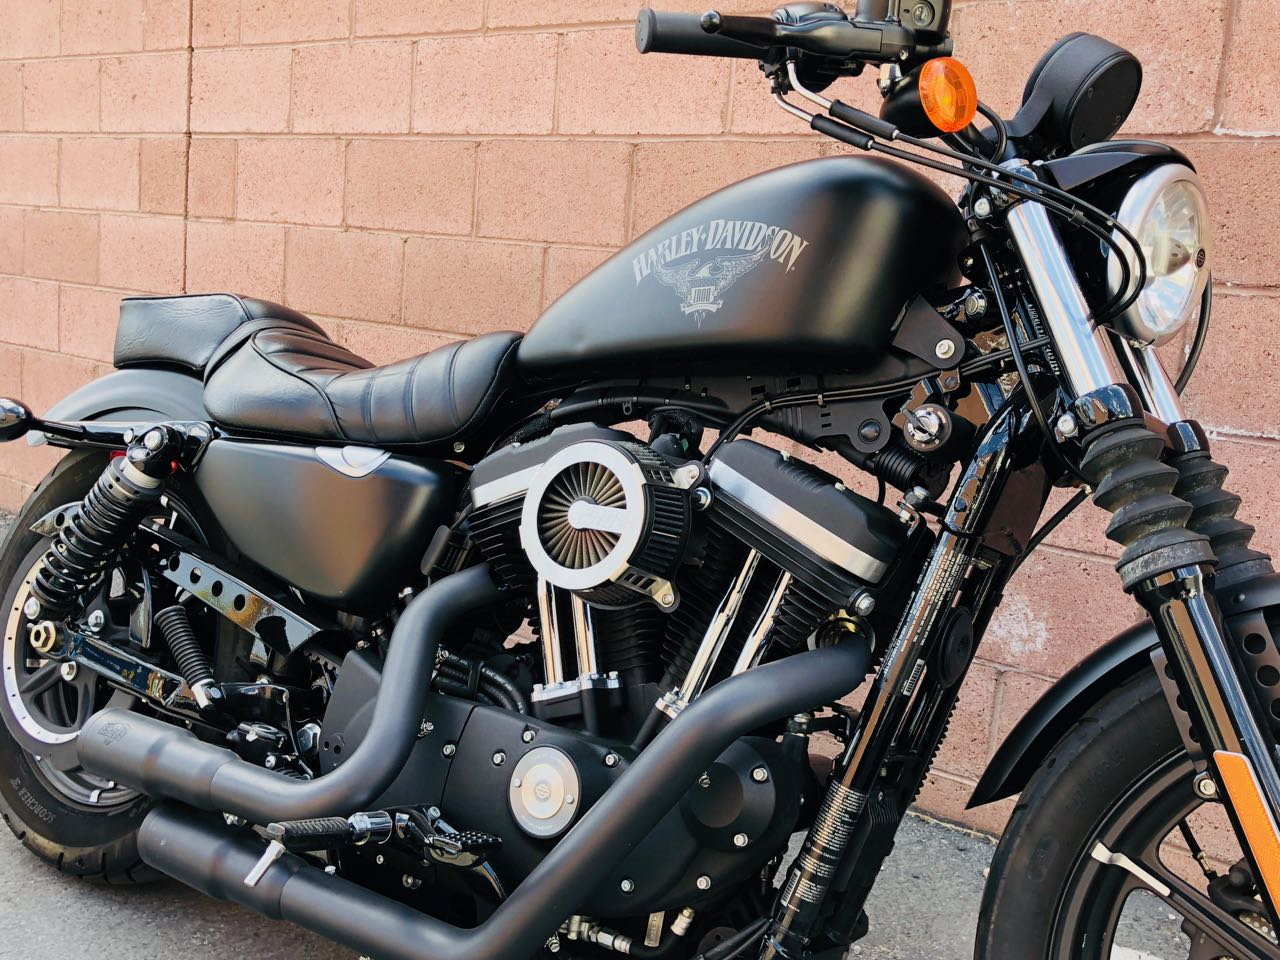 Inventory From Buell And Harley Davidson Freedom Euro Cycle 2000 Xl 883 Wiring Harness The Sportster Motorcycle 2016 Xl883 Iron